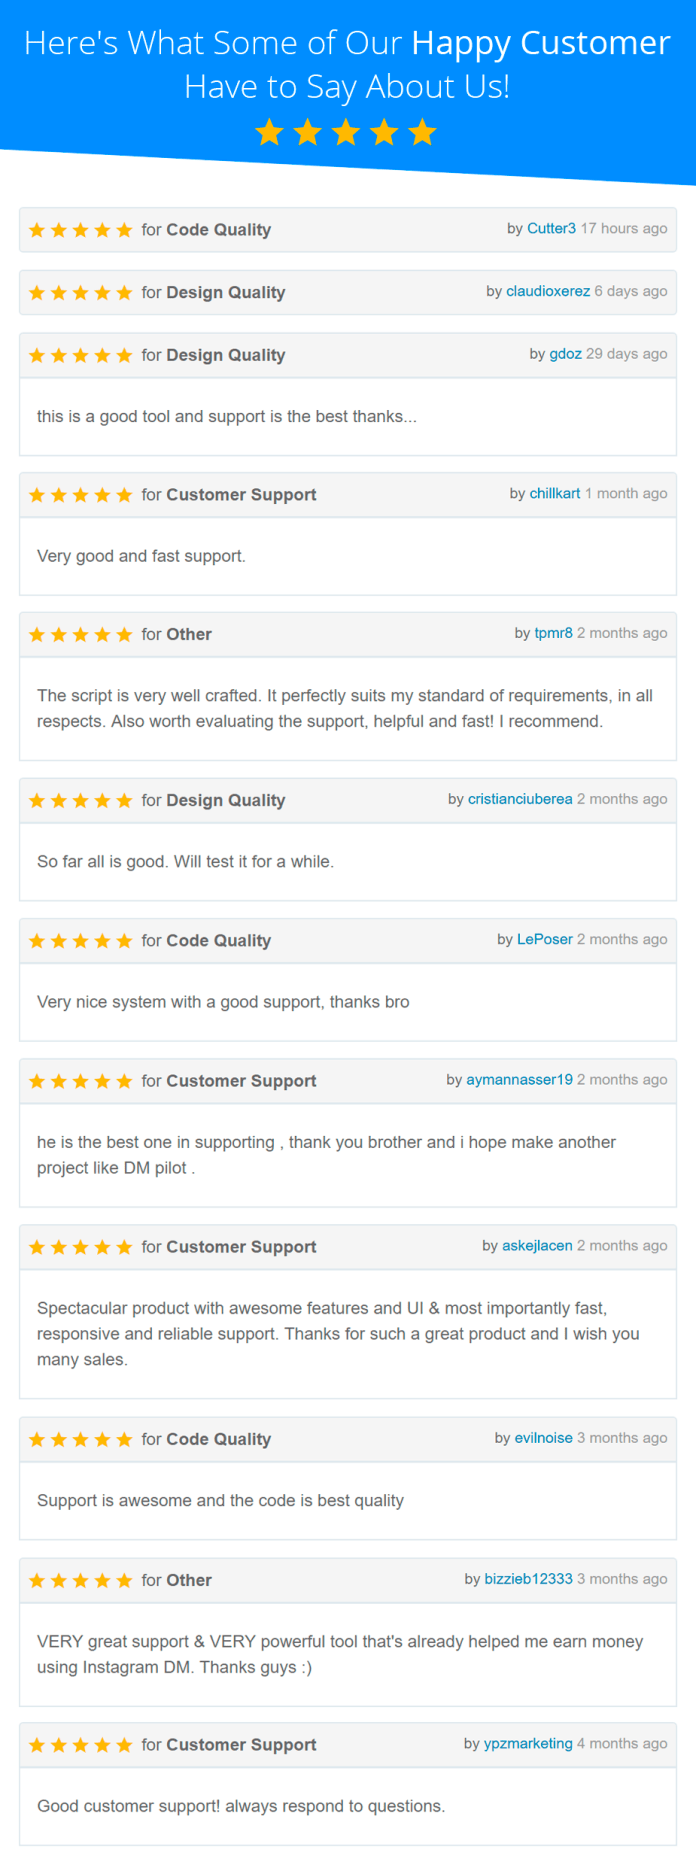 Here's What Some of Our Happy Customer Have to Say About Us!